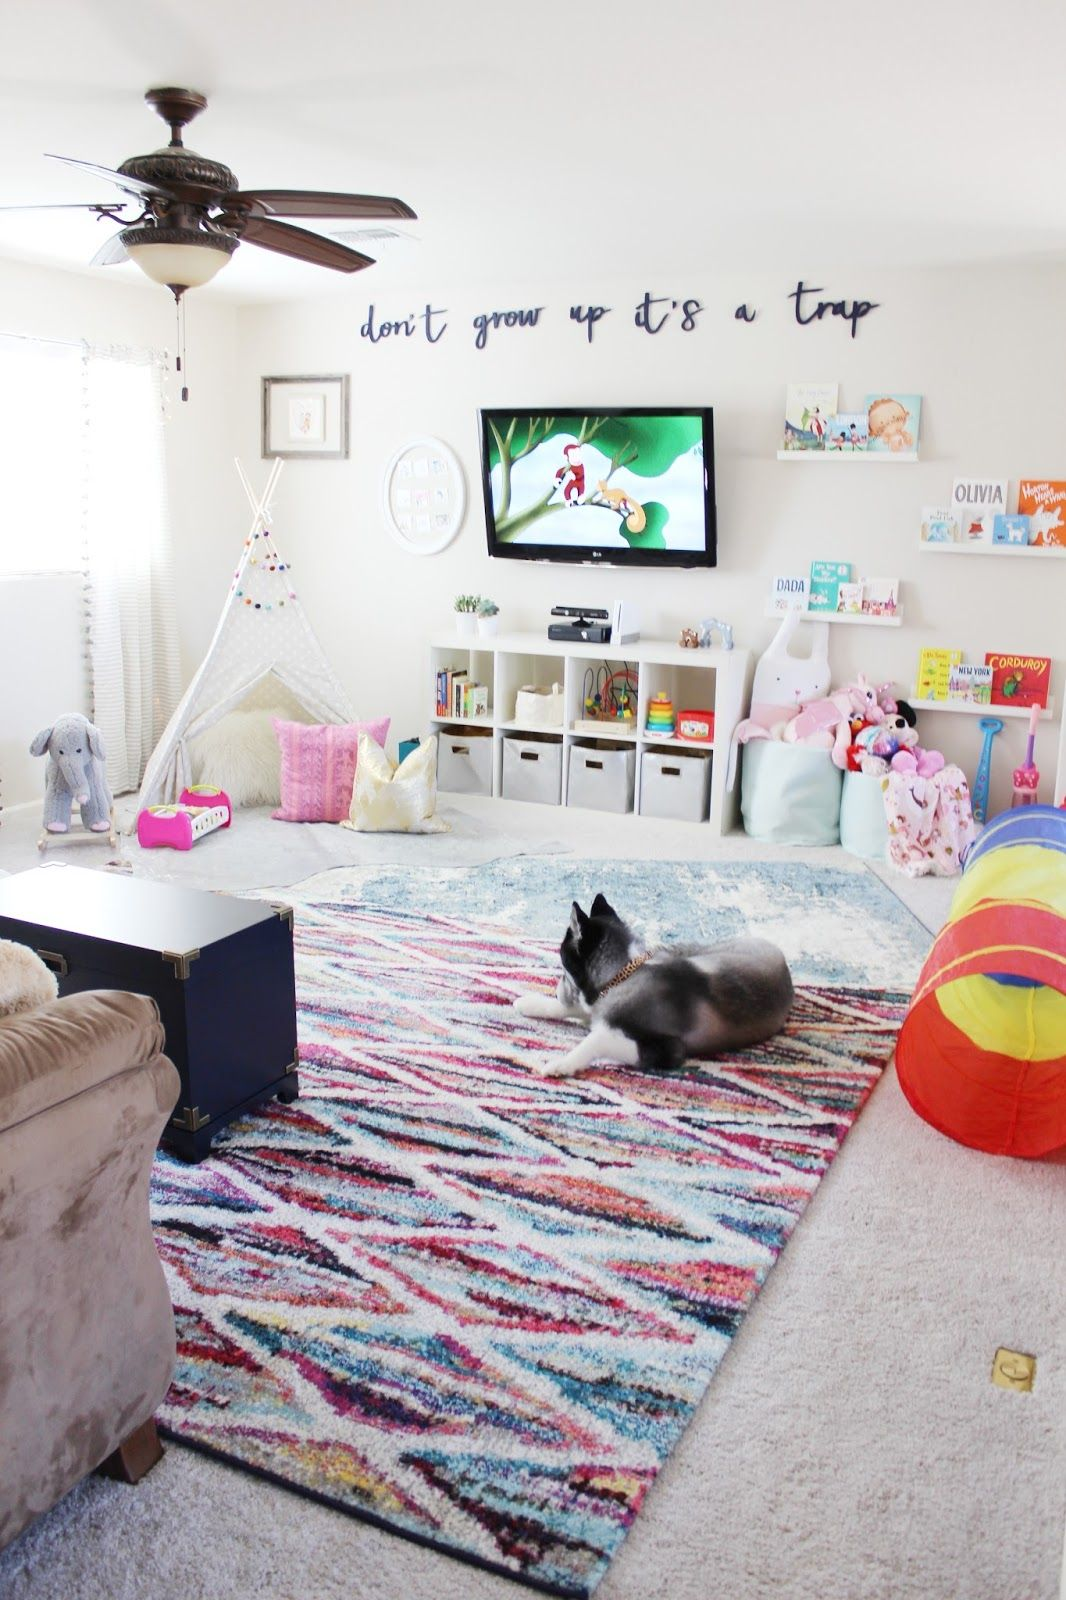 Rugs For Children's Rooms Playroom Reveal By Aubrey Kinch With Rugs Usa 39s Tracce